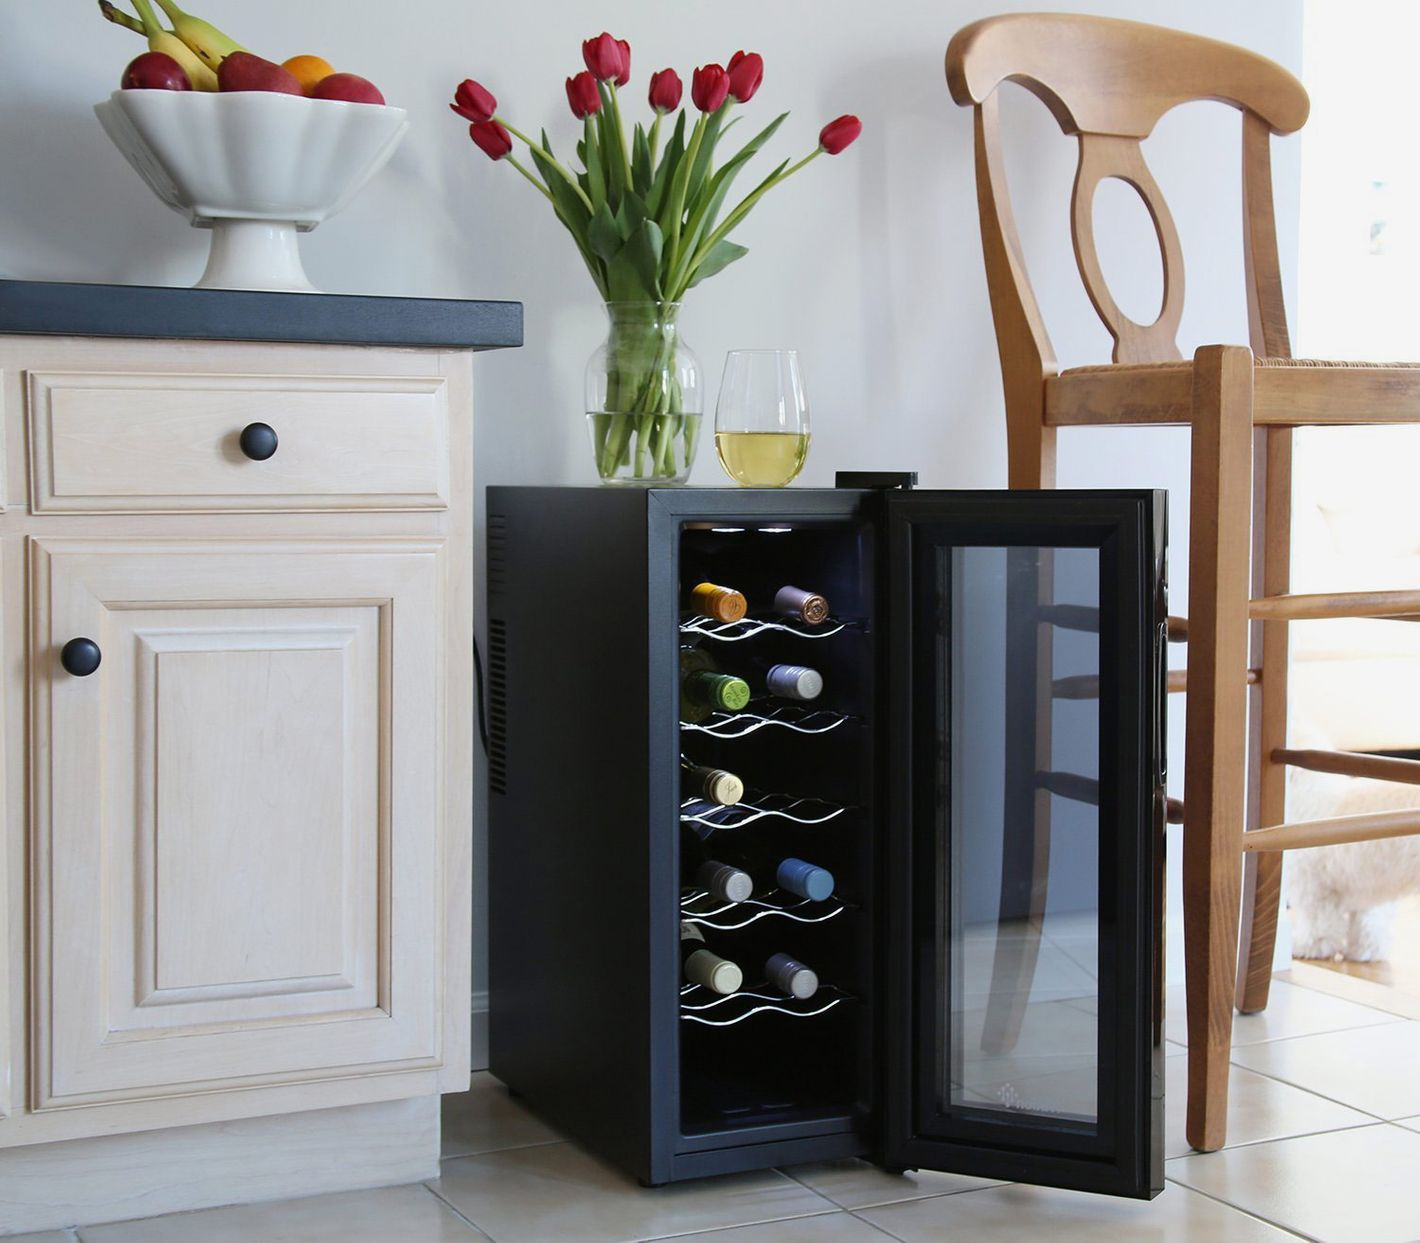 Ivation 12-Bottle Thermoelectric Red and White Wine Cooler